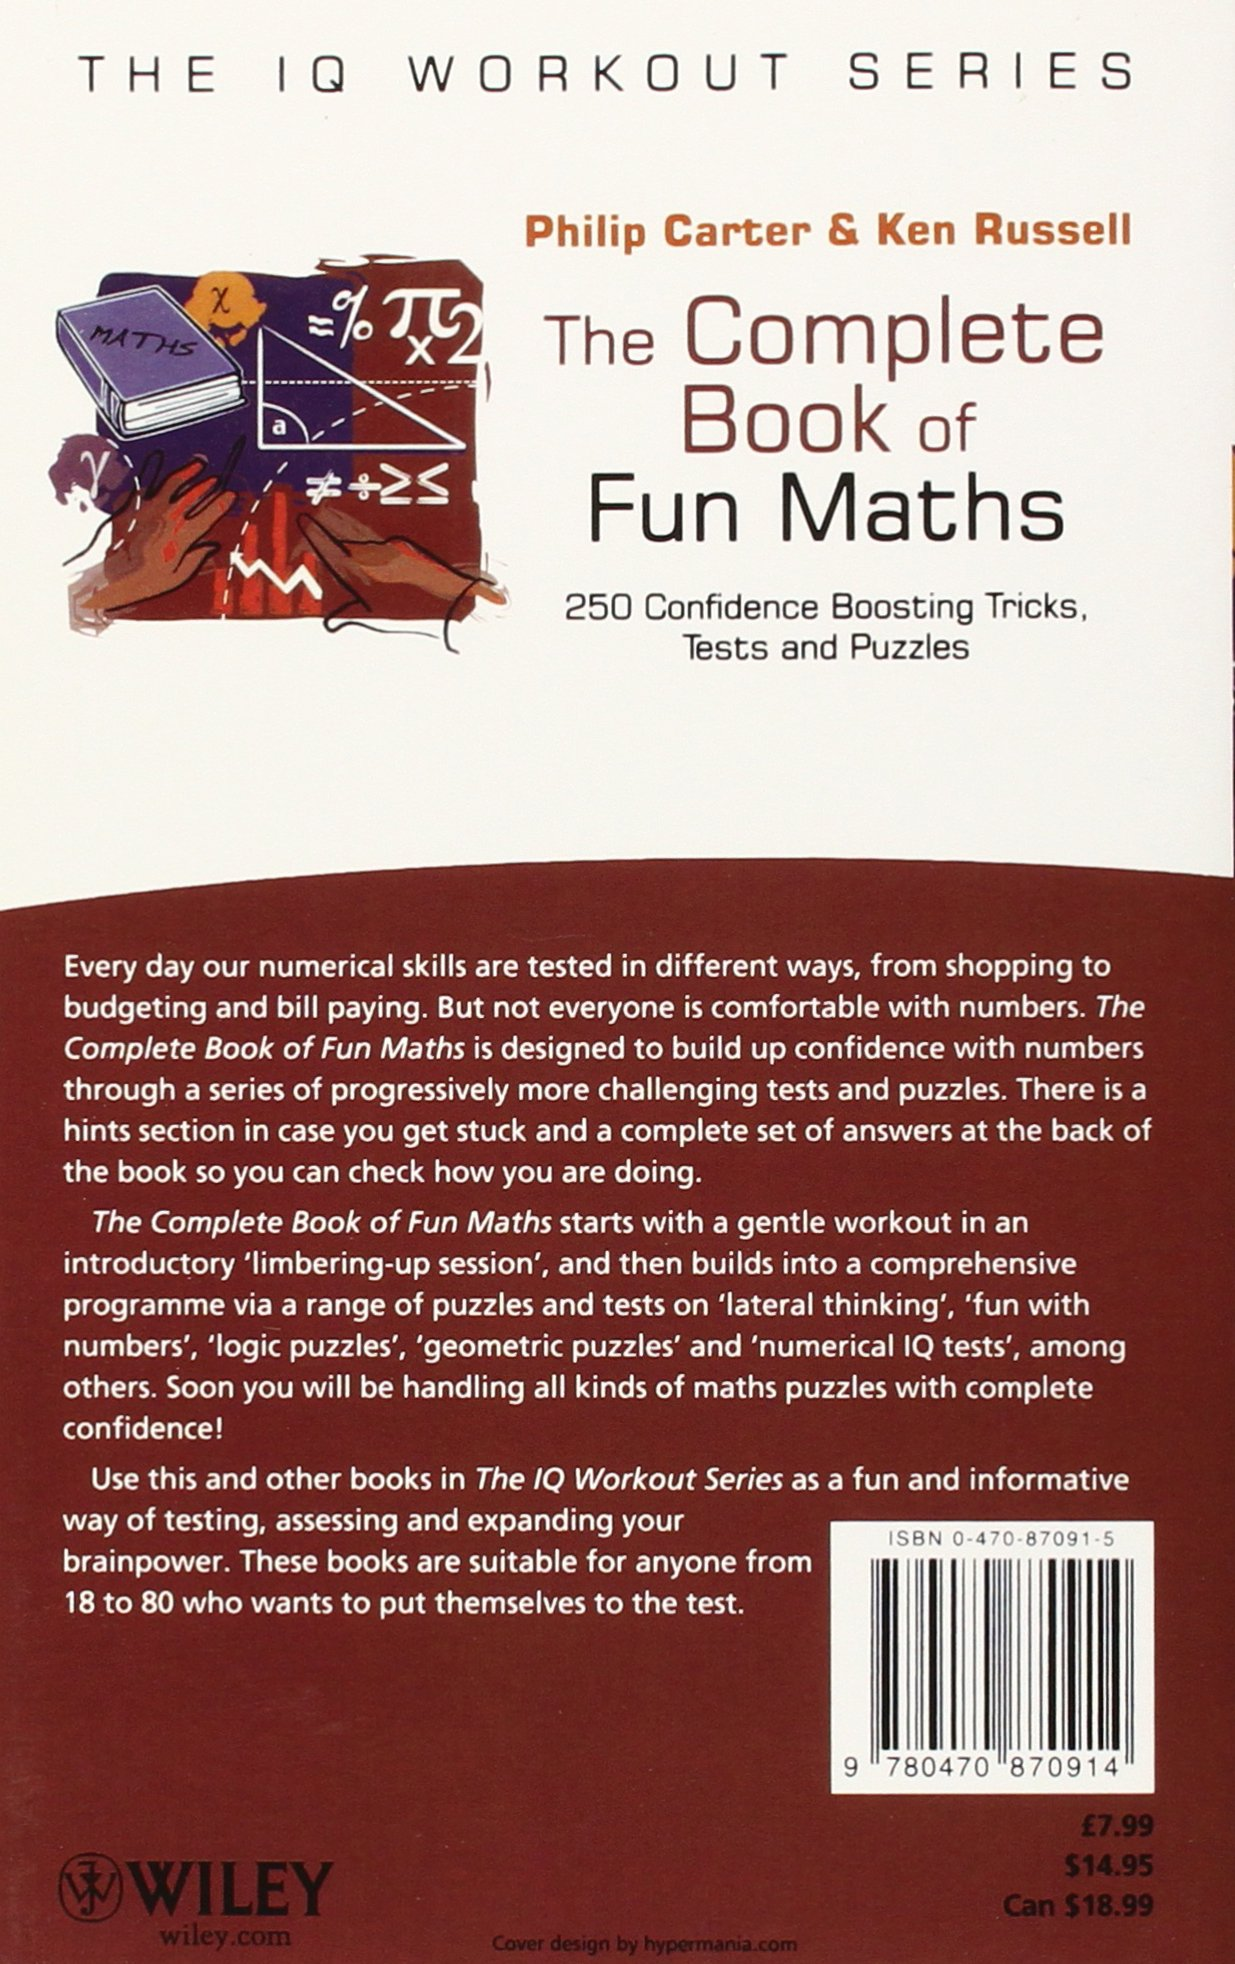 The Complete Book of Fun Maths: 250 Confidence-boosting Tricks, Tests and Puzzles